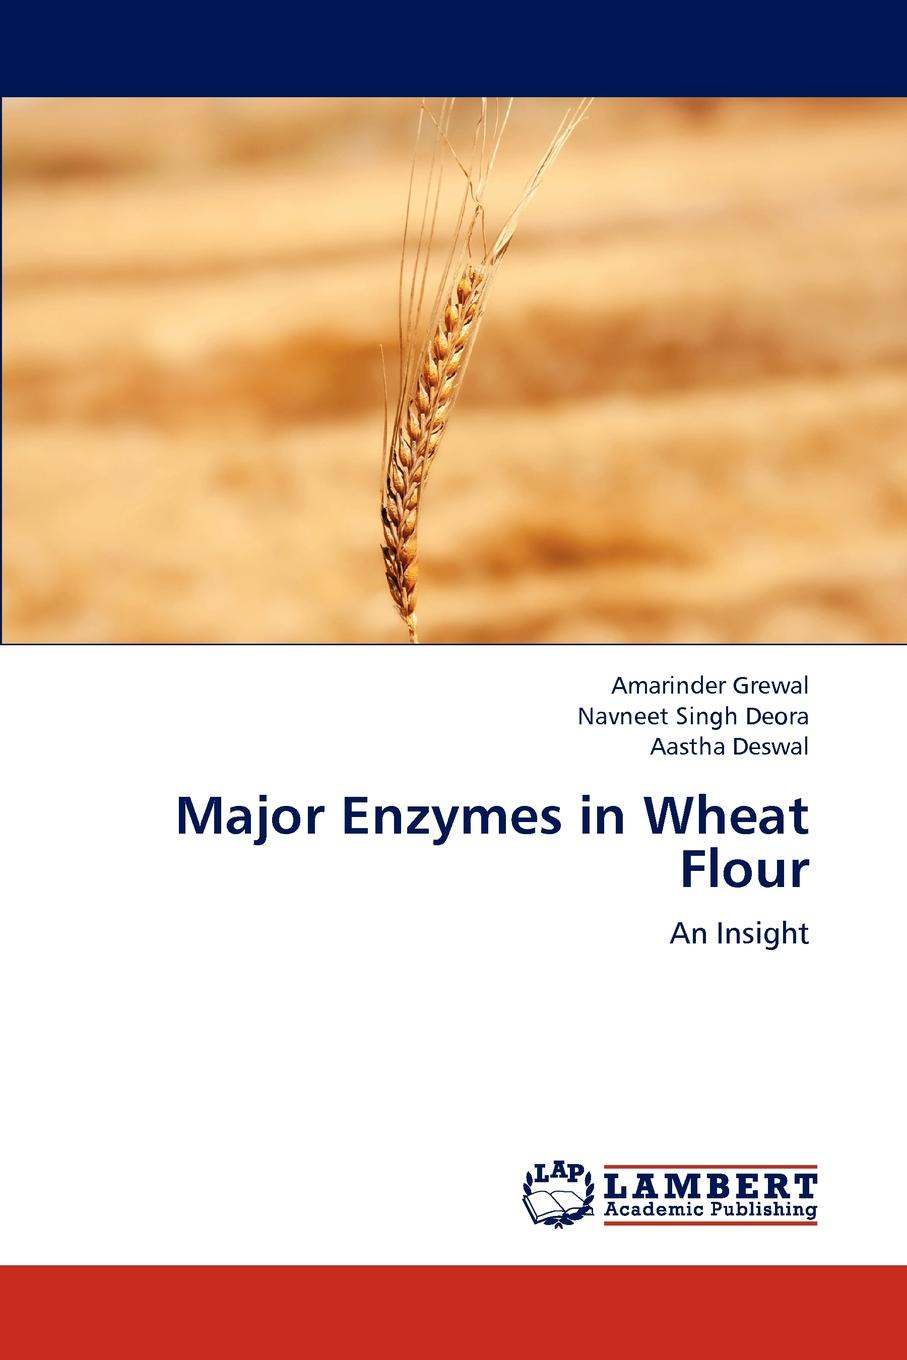 Amarinder Grewal, Navneet Singh Deora, Aastha Deswal Major Enzymes in Wheat Flour orban kalman csongor contributions to the opt and modeling of amylolysis with rec enzymes